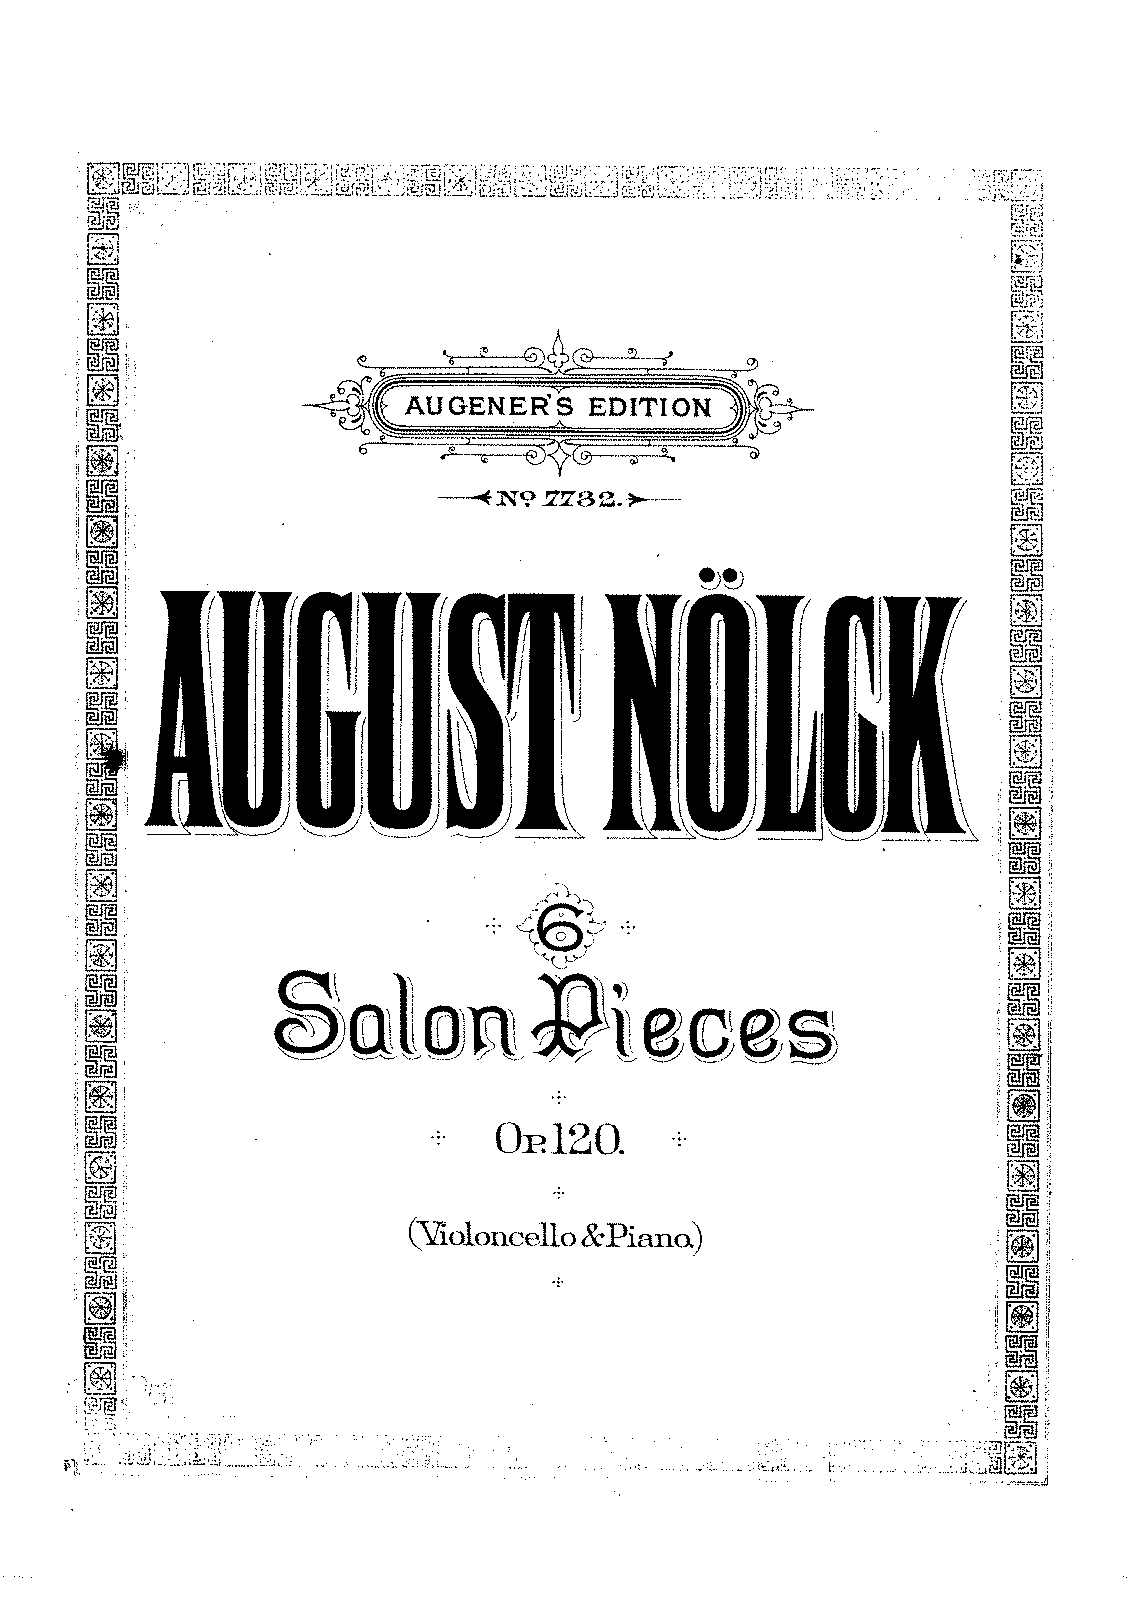 PMLP58082-Nolck 6 Salon Pieces Op120 Cello Piano.pdf